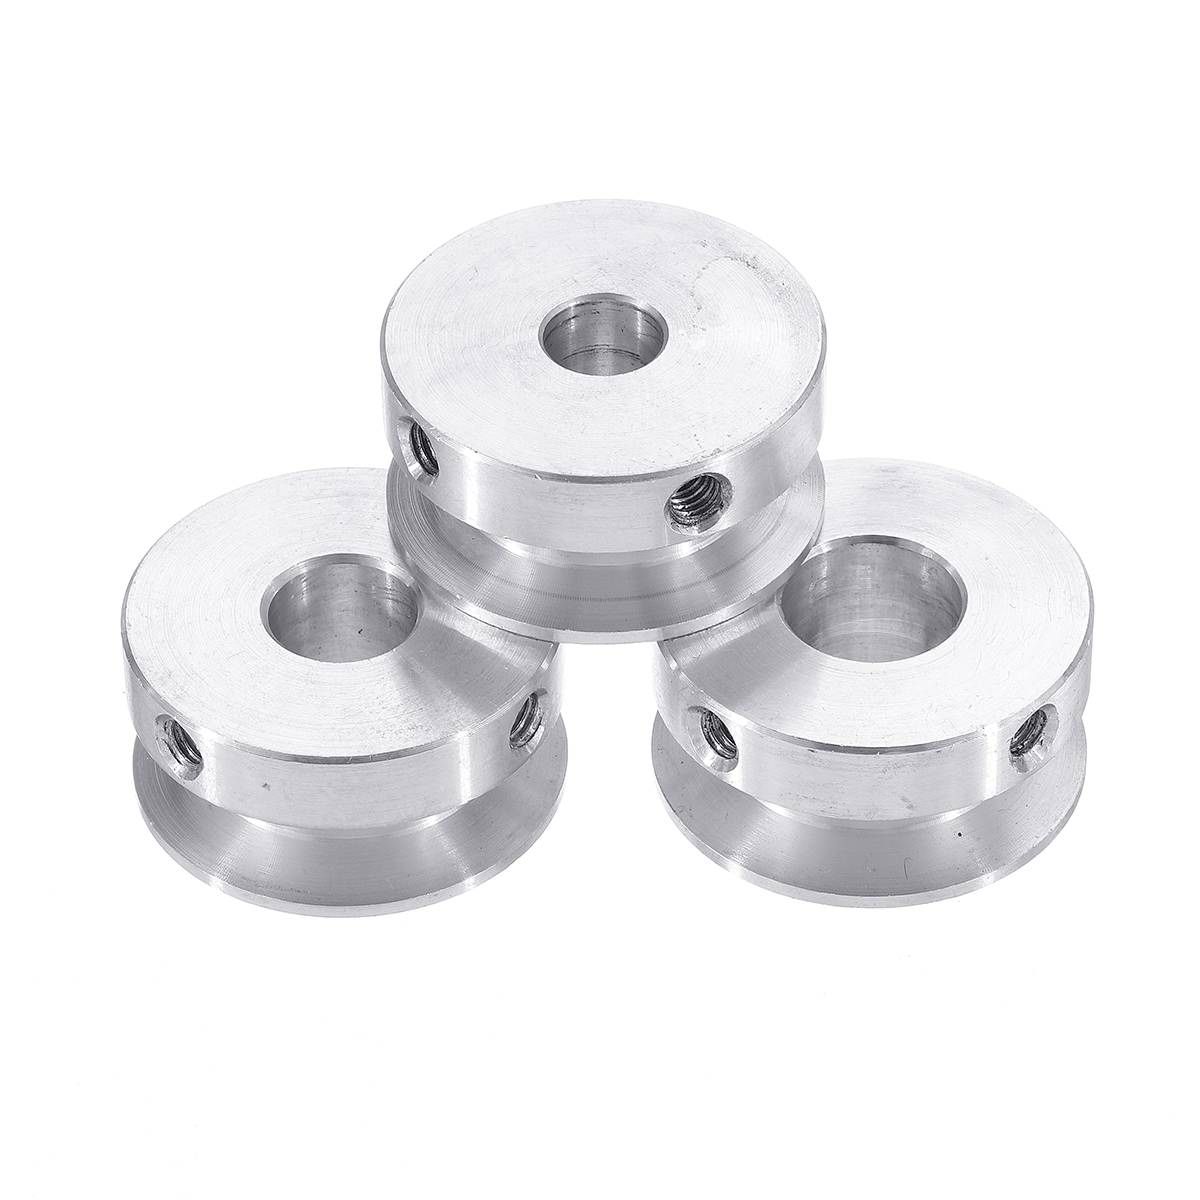 30mm Aluminum Alloy Single Groove Pulley 4-16mm Fixed Bore Pulley Wheel for Motor Shaft 6mm Belt